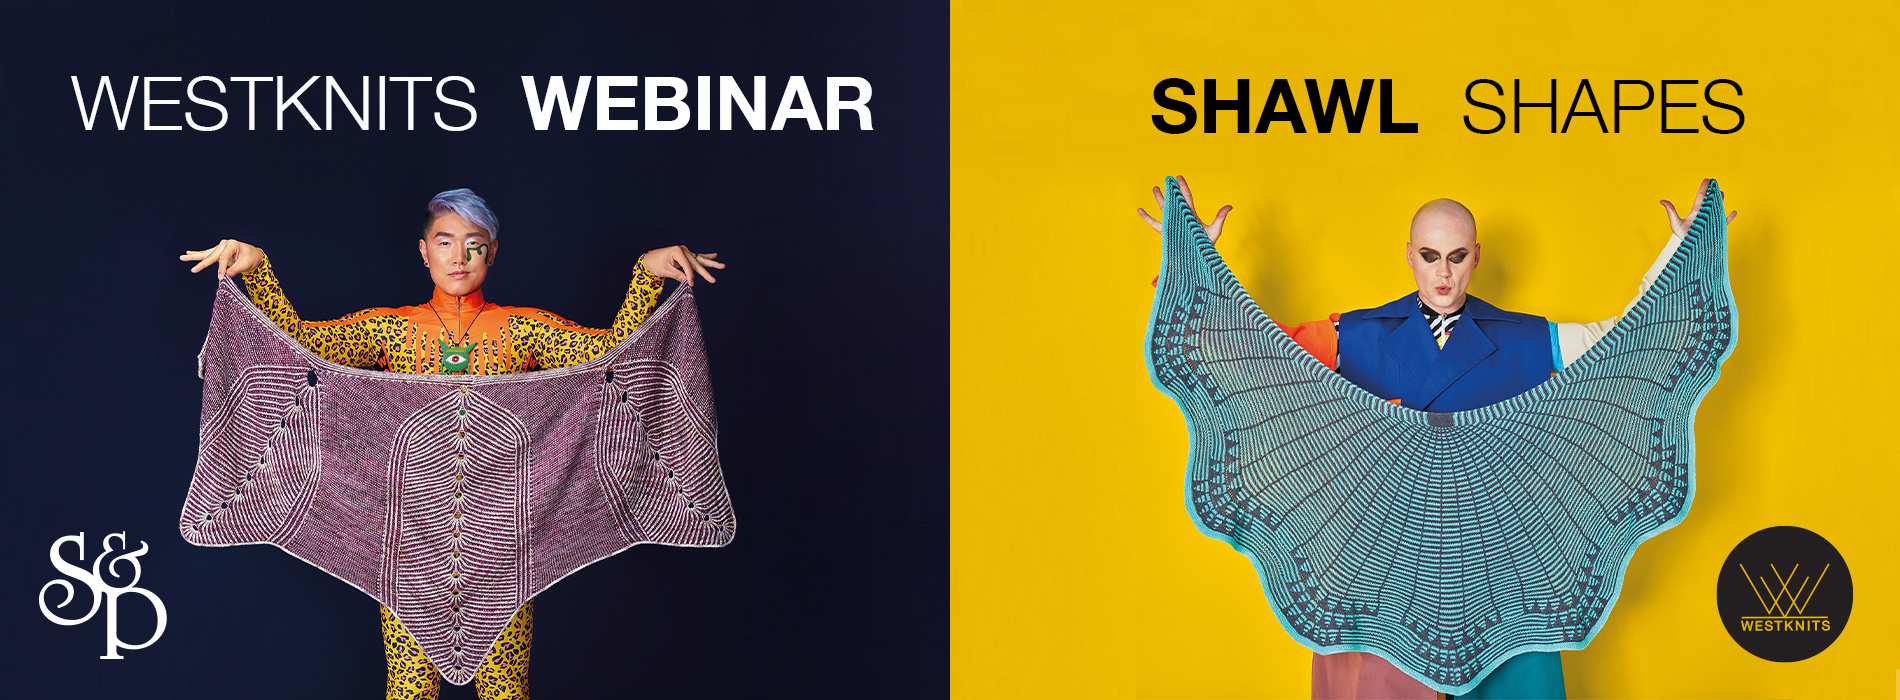 Westknits Webinar - Shawl Shapes